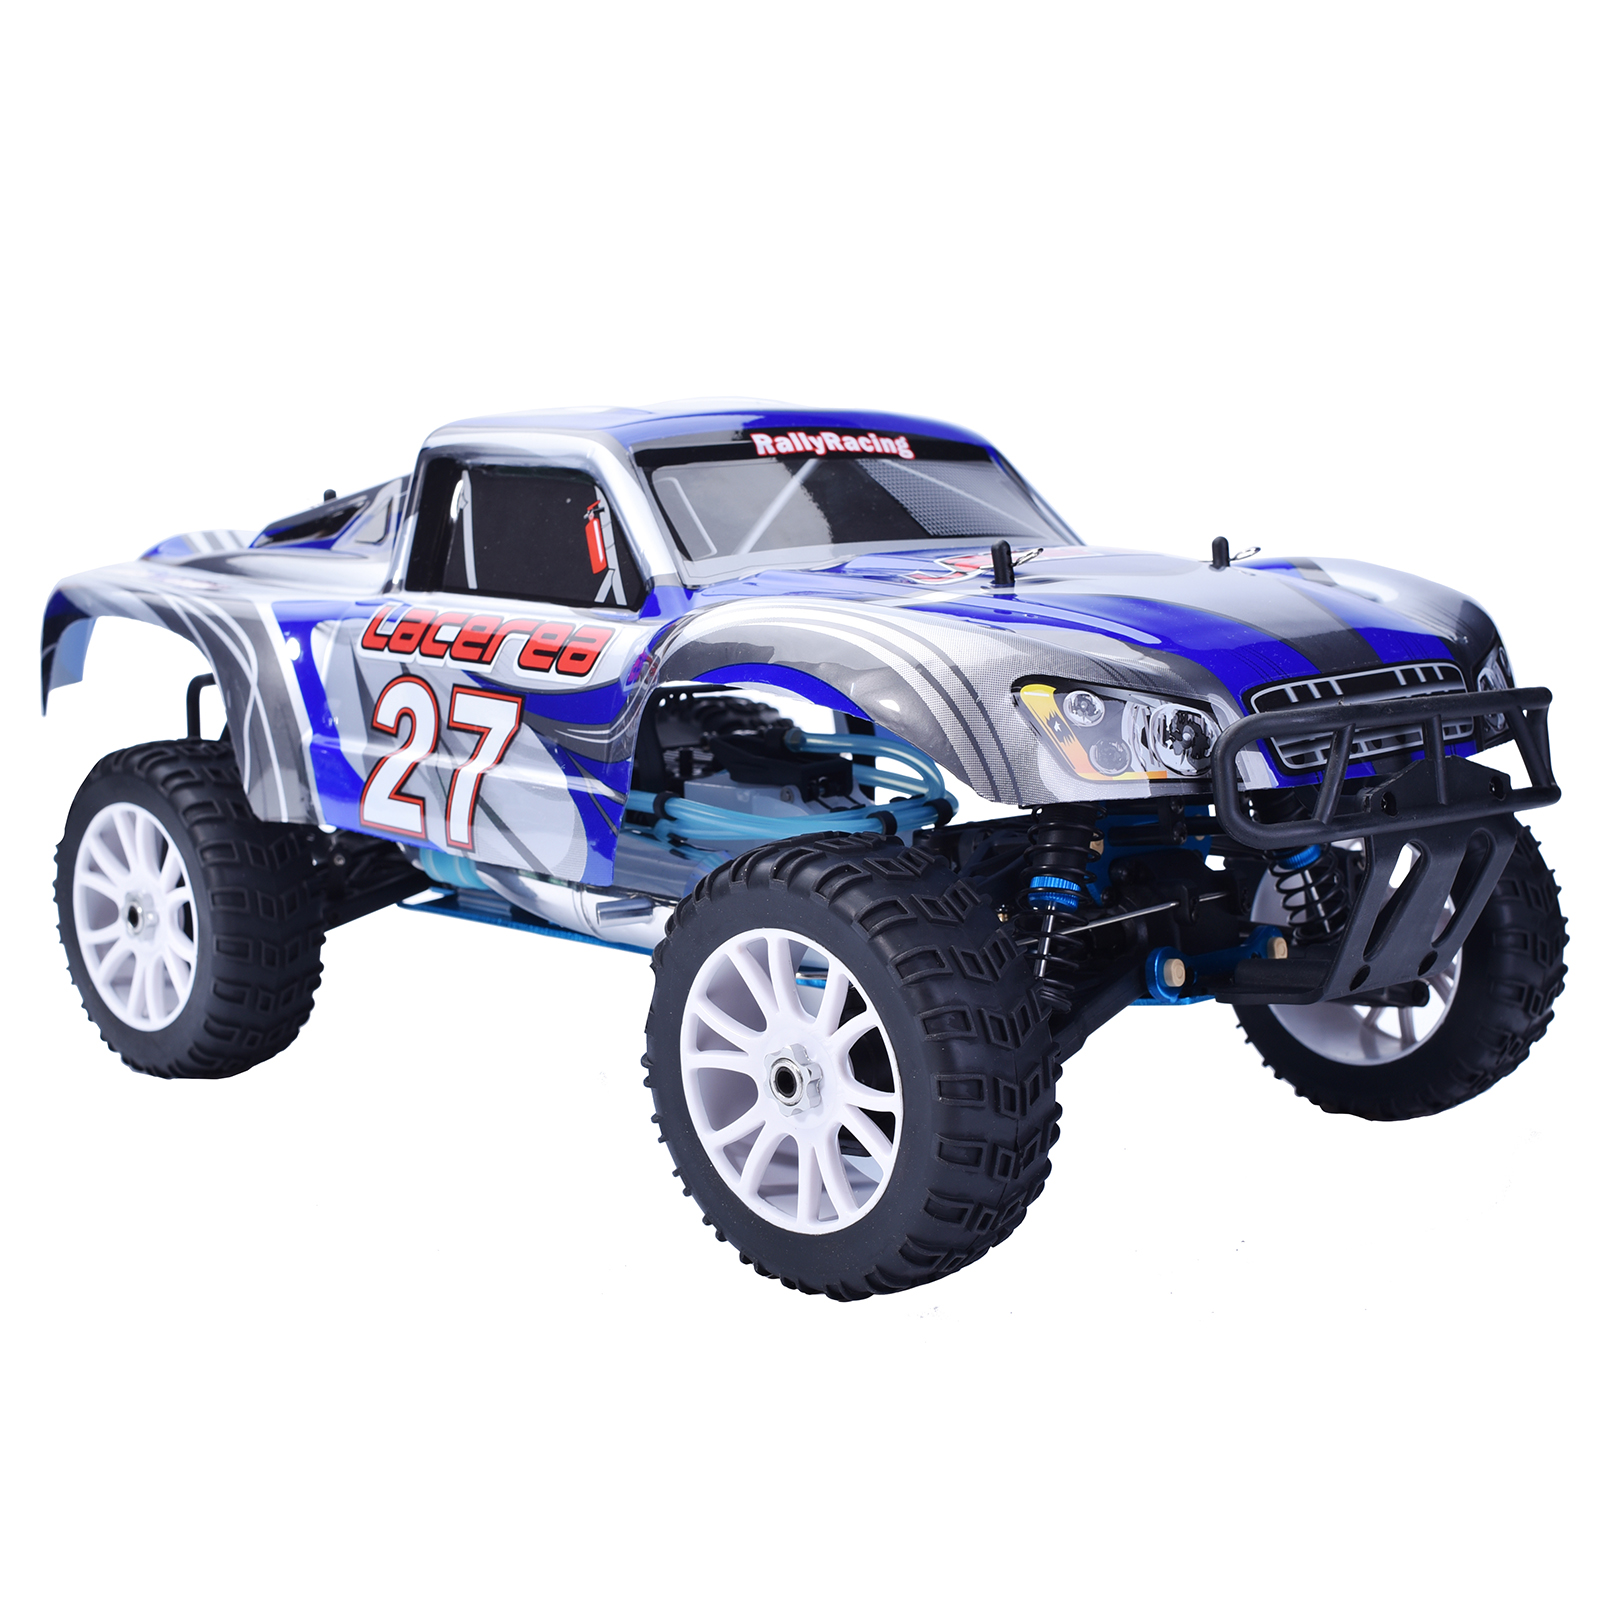 Hsp Rc Truck Nitro Gas Power Off Road Monster Truck 94188: HSP 2.4Ghz 1/8 RC Car Off Road Nitro Gas Short Course